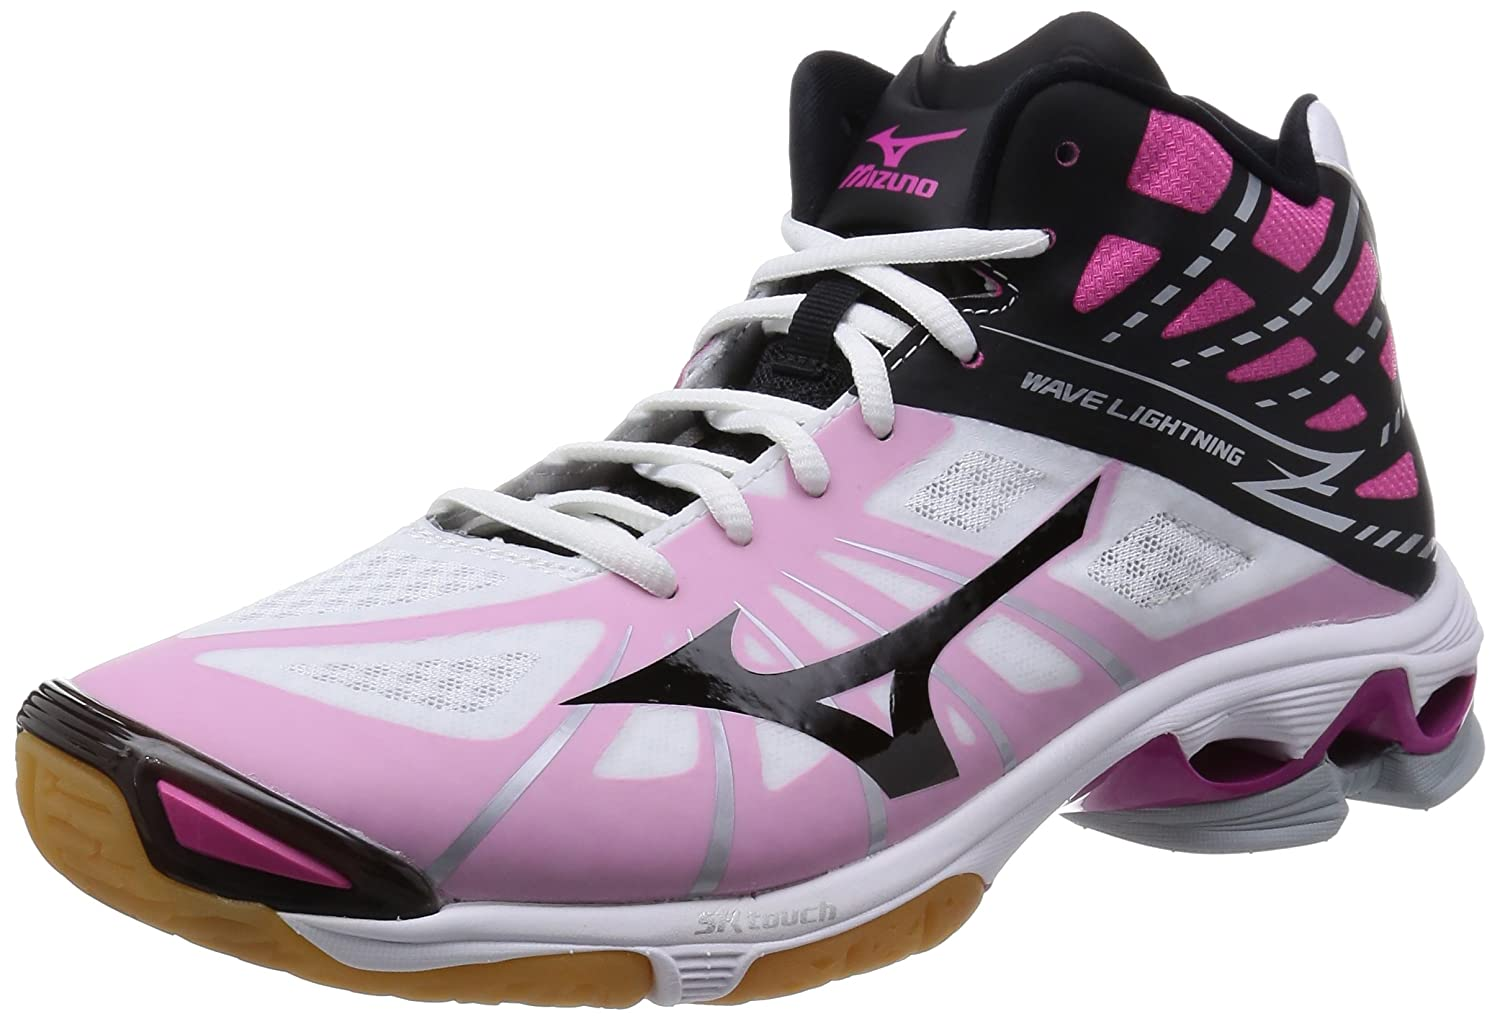 Pink And Black Mizuno Volleyball Shoes